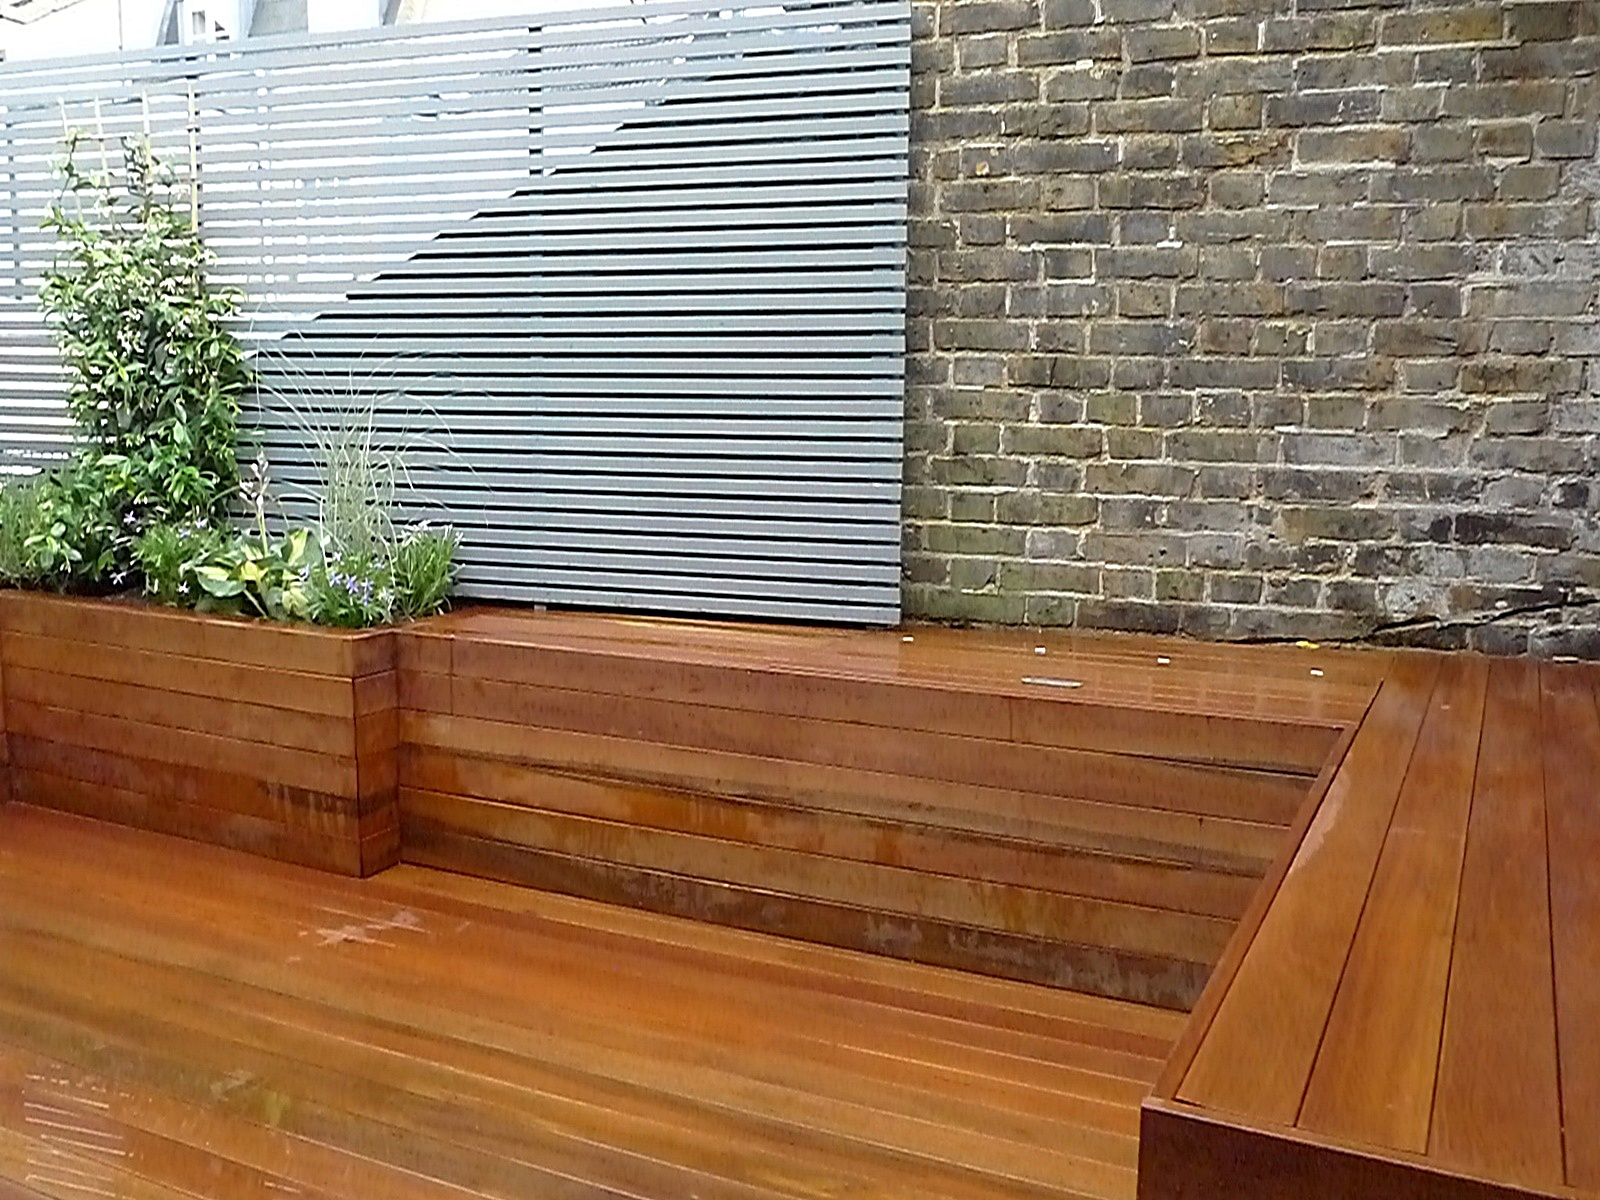 floating bench brick garden wall planting balham clapham battersea - Brick Garden 2015